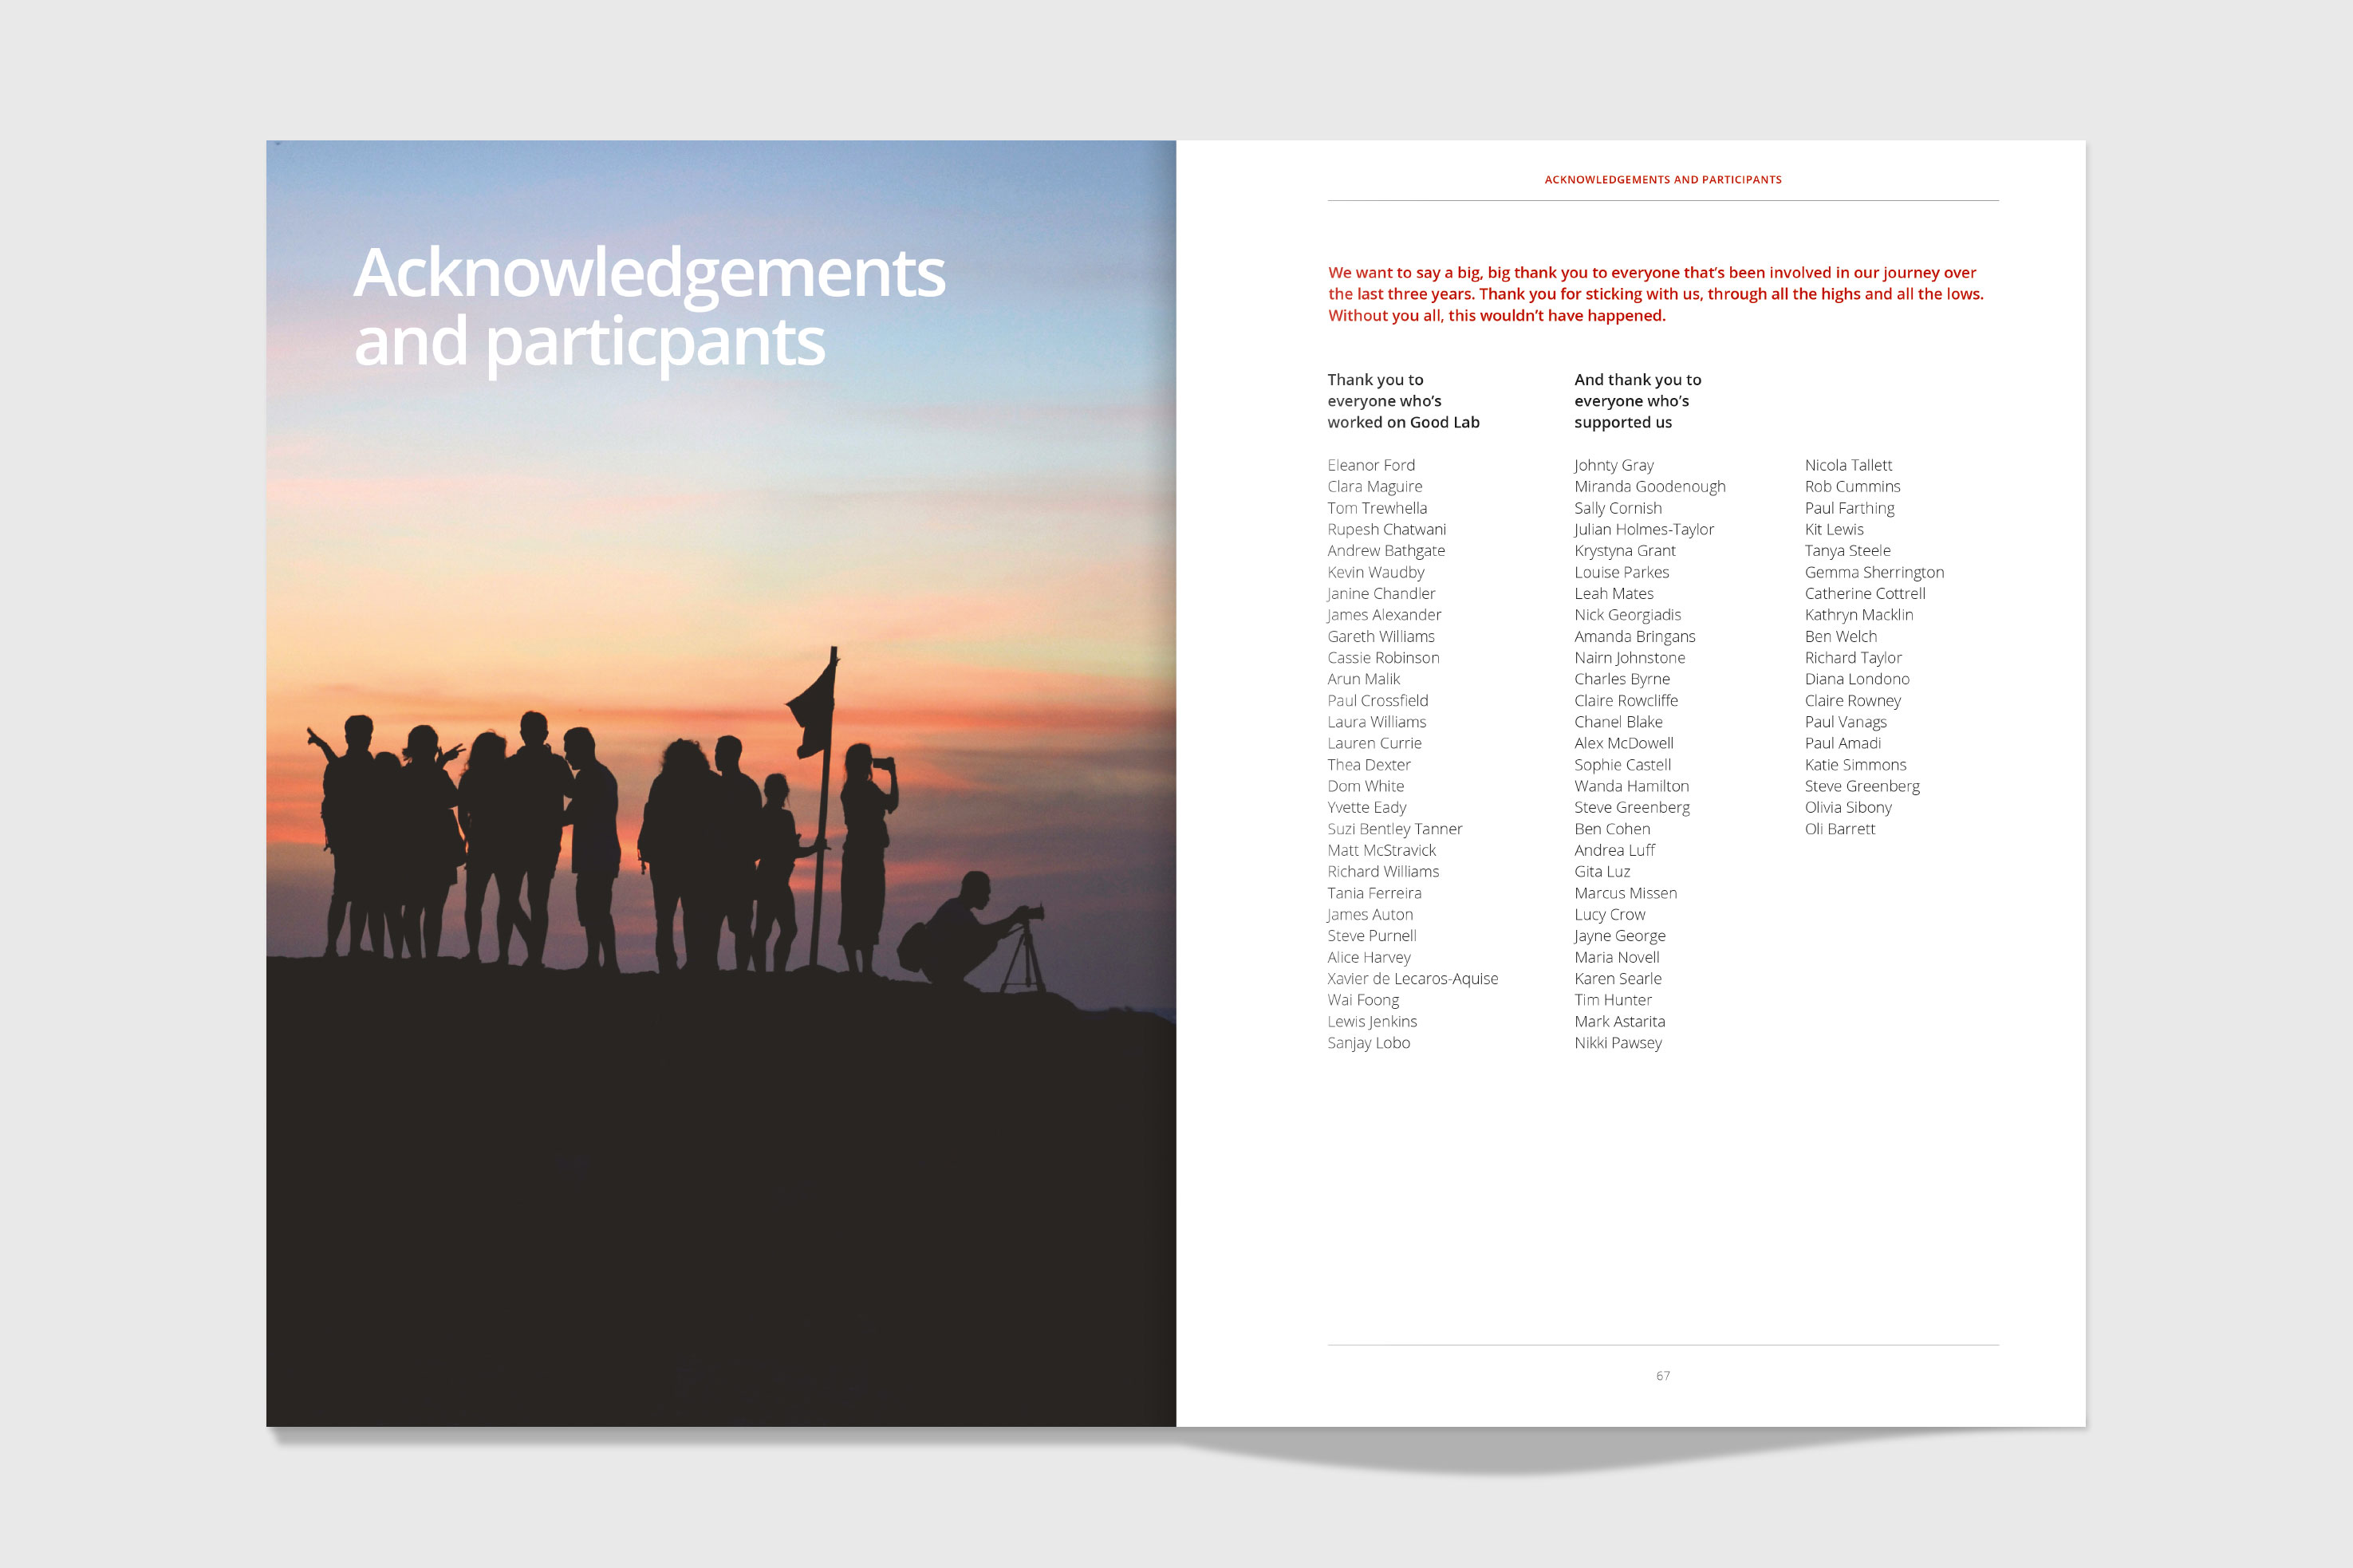 good-lab-report-print-acknowledgements